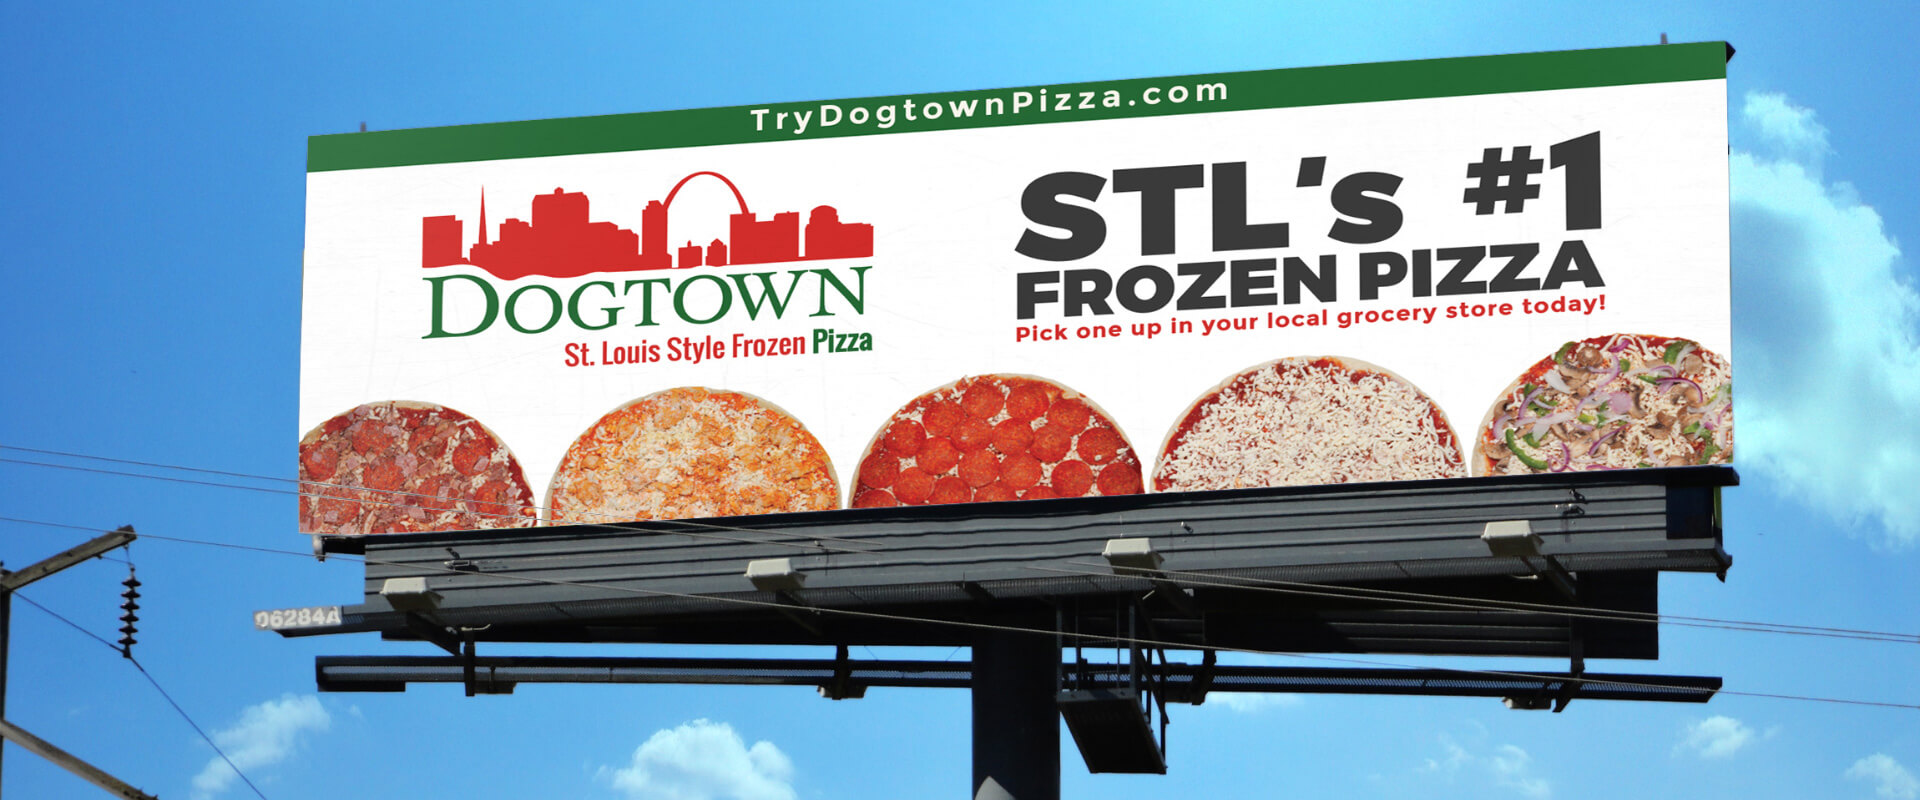 Dogtown Pizza billboard